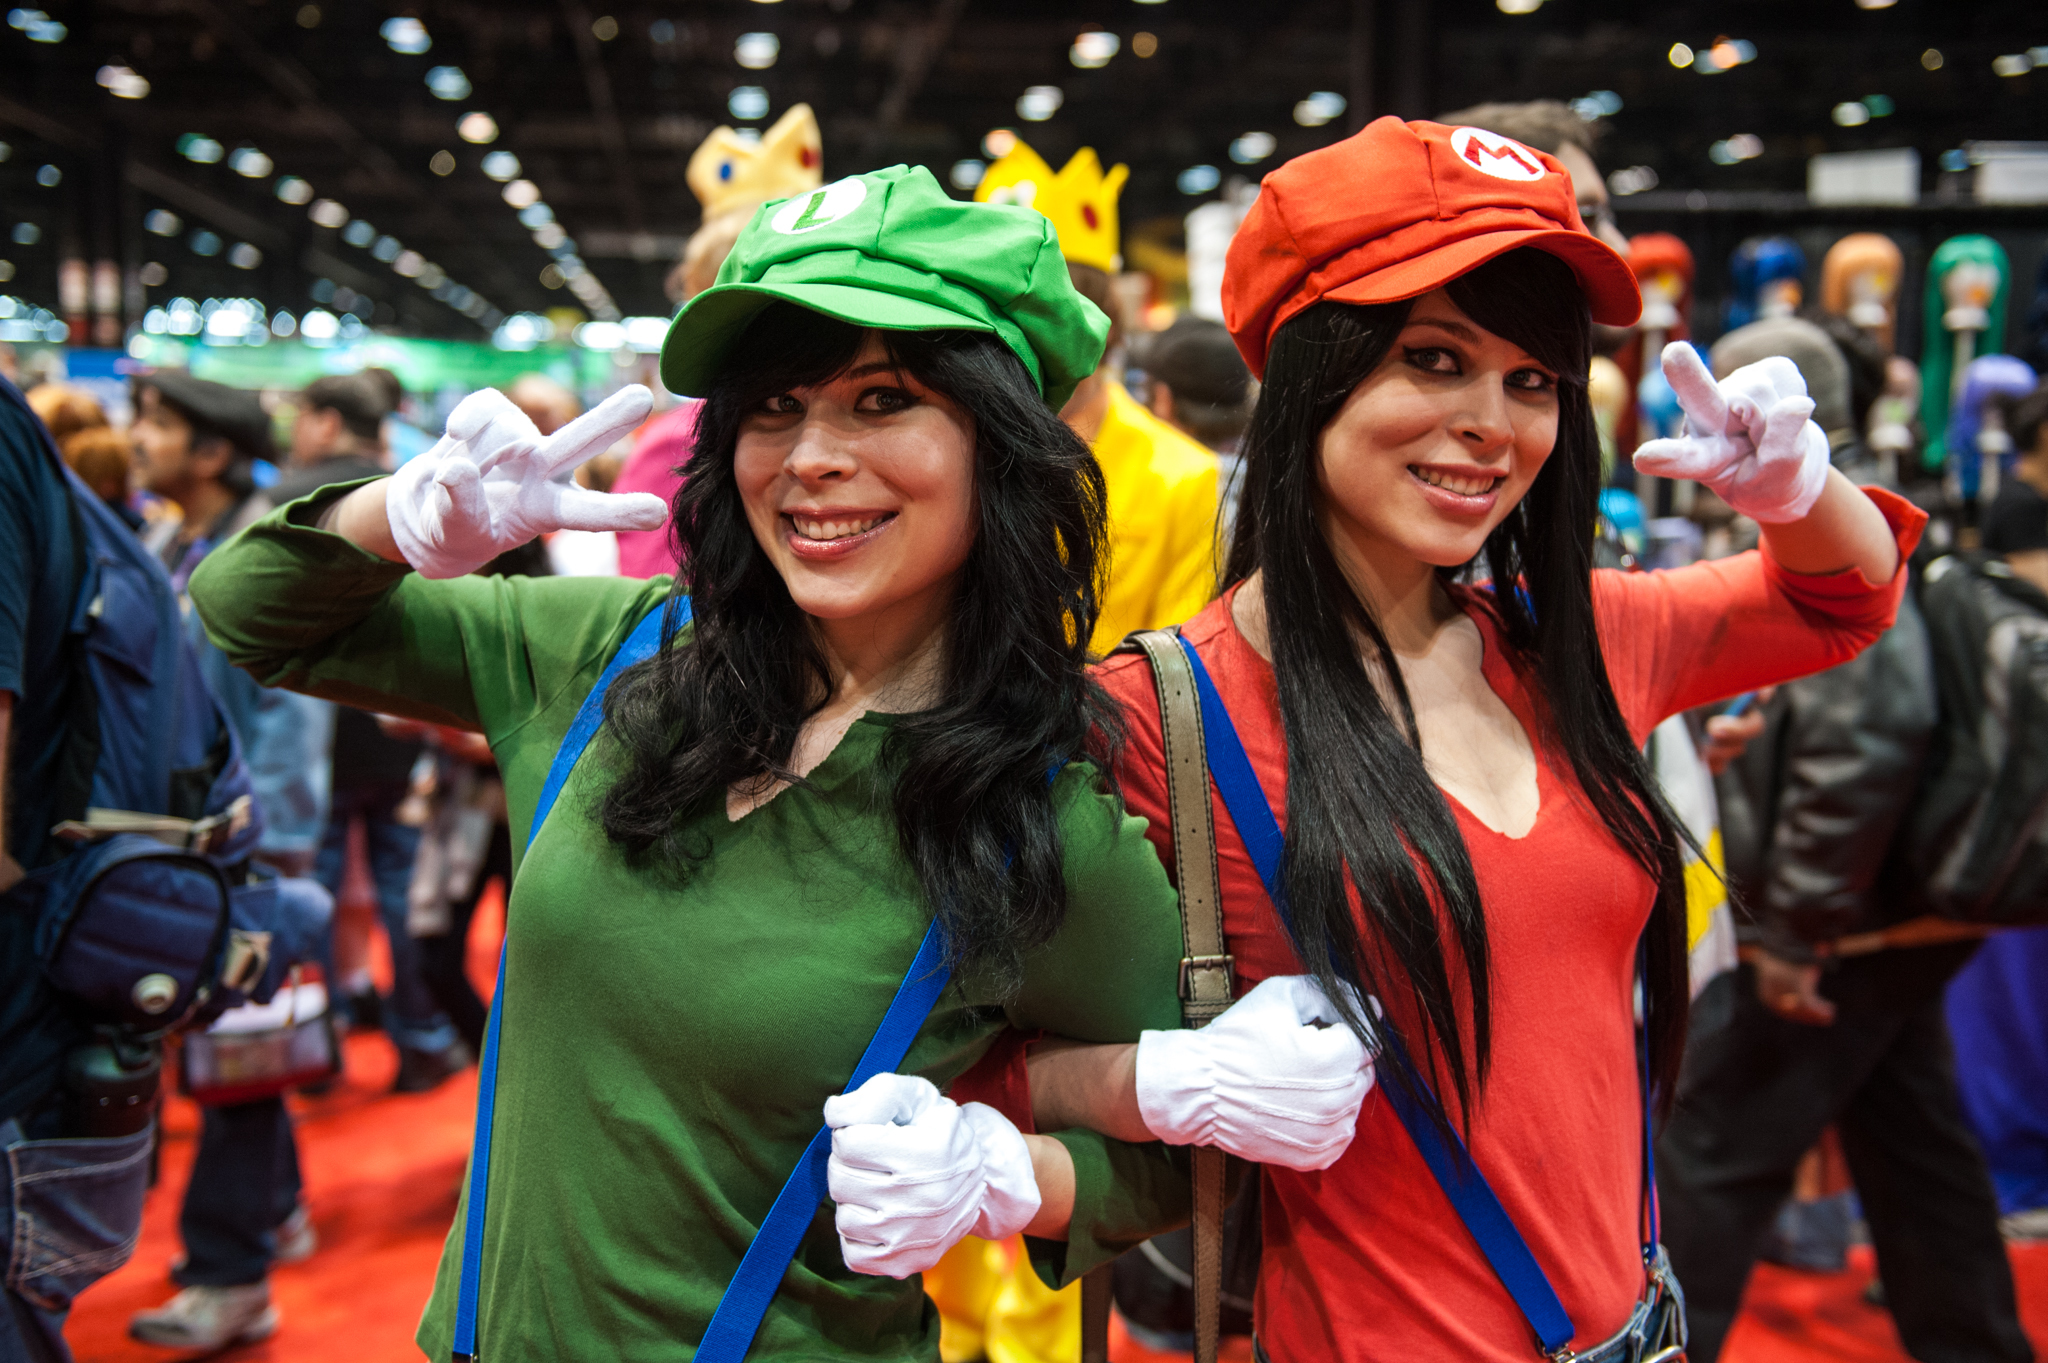 Get geeky at C2E2